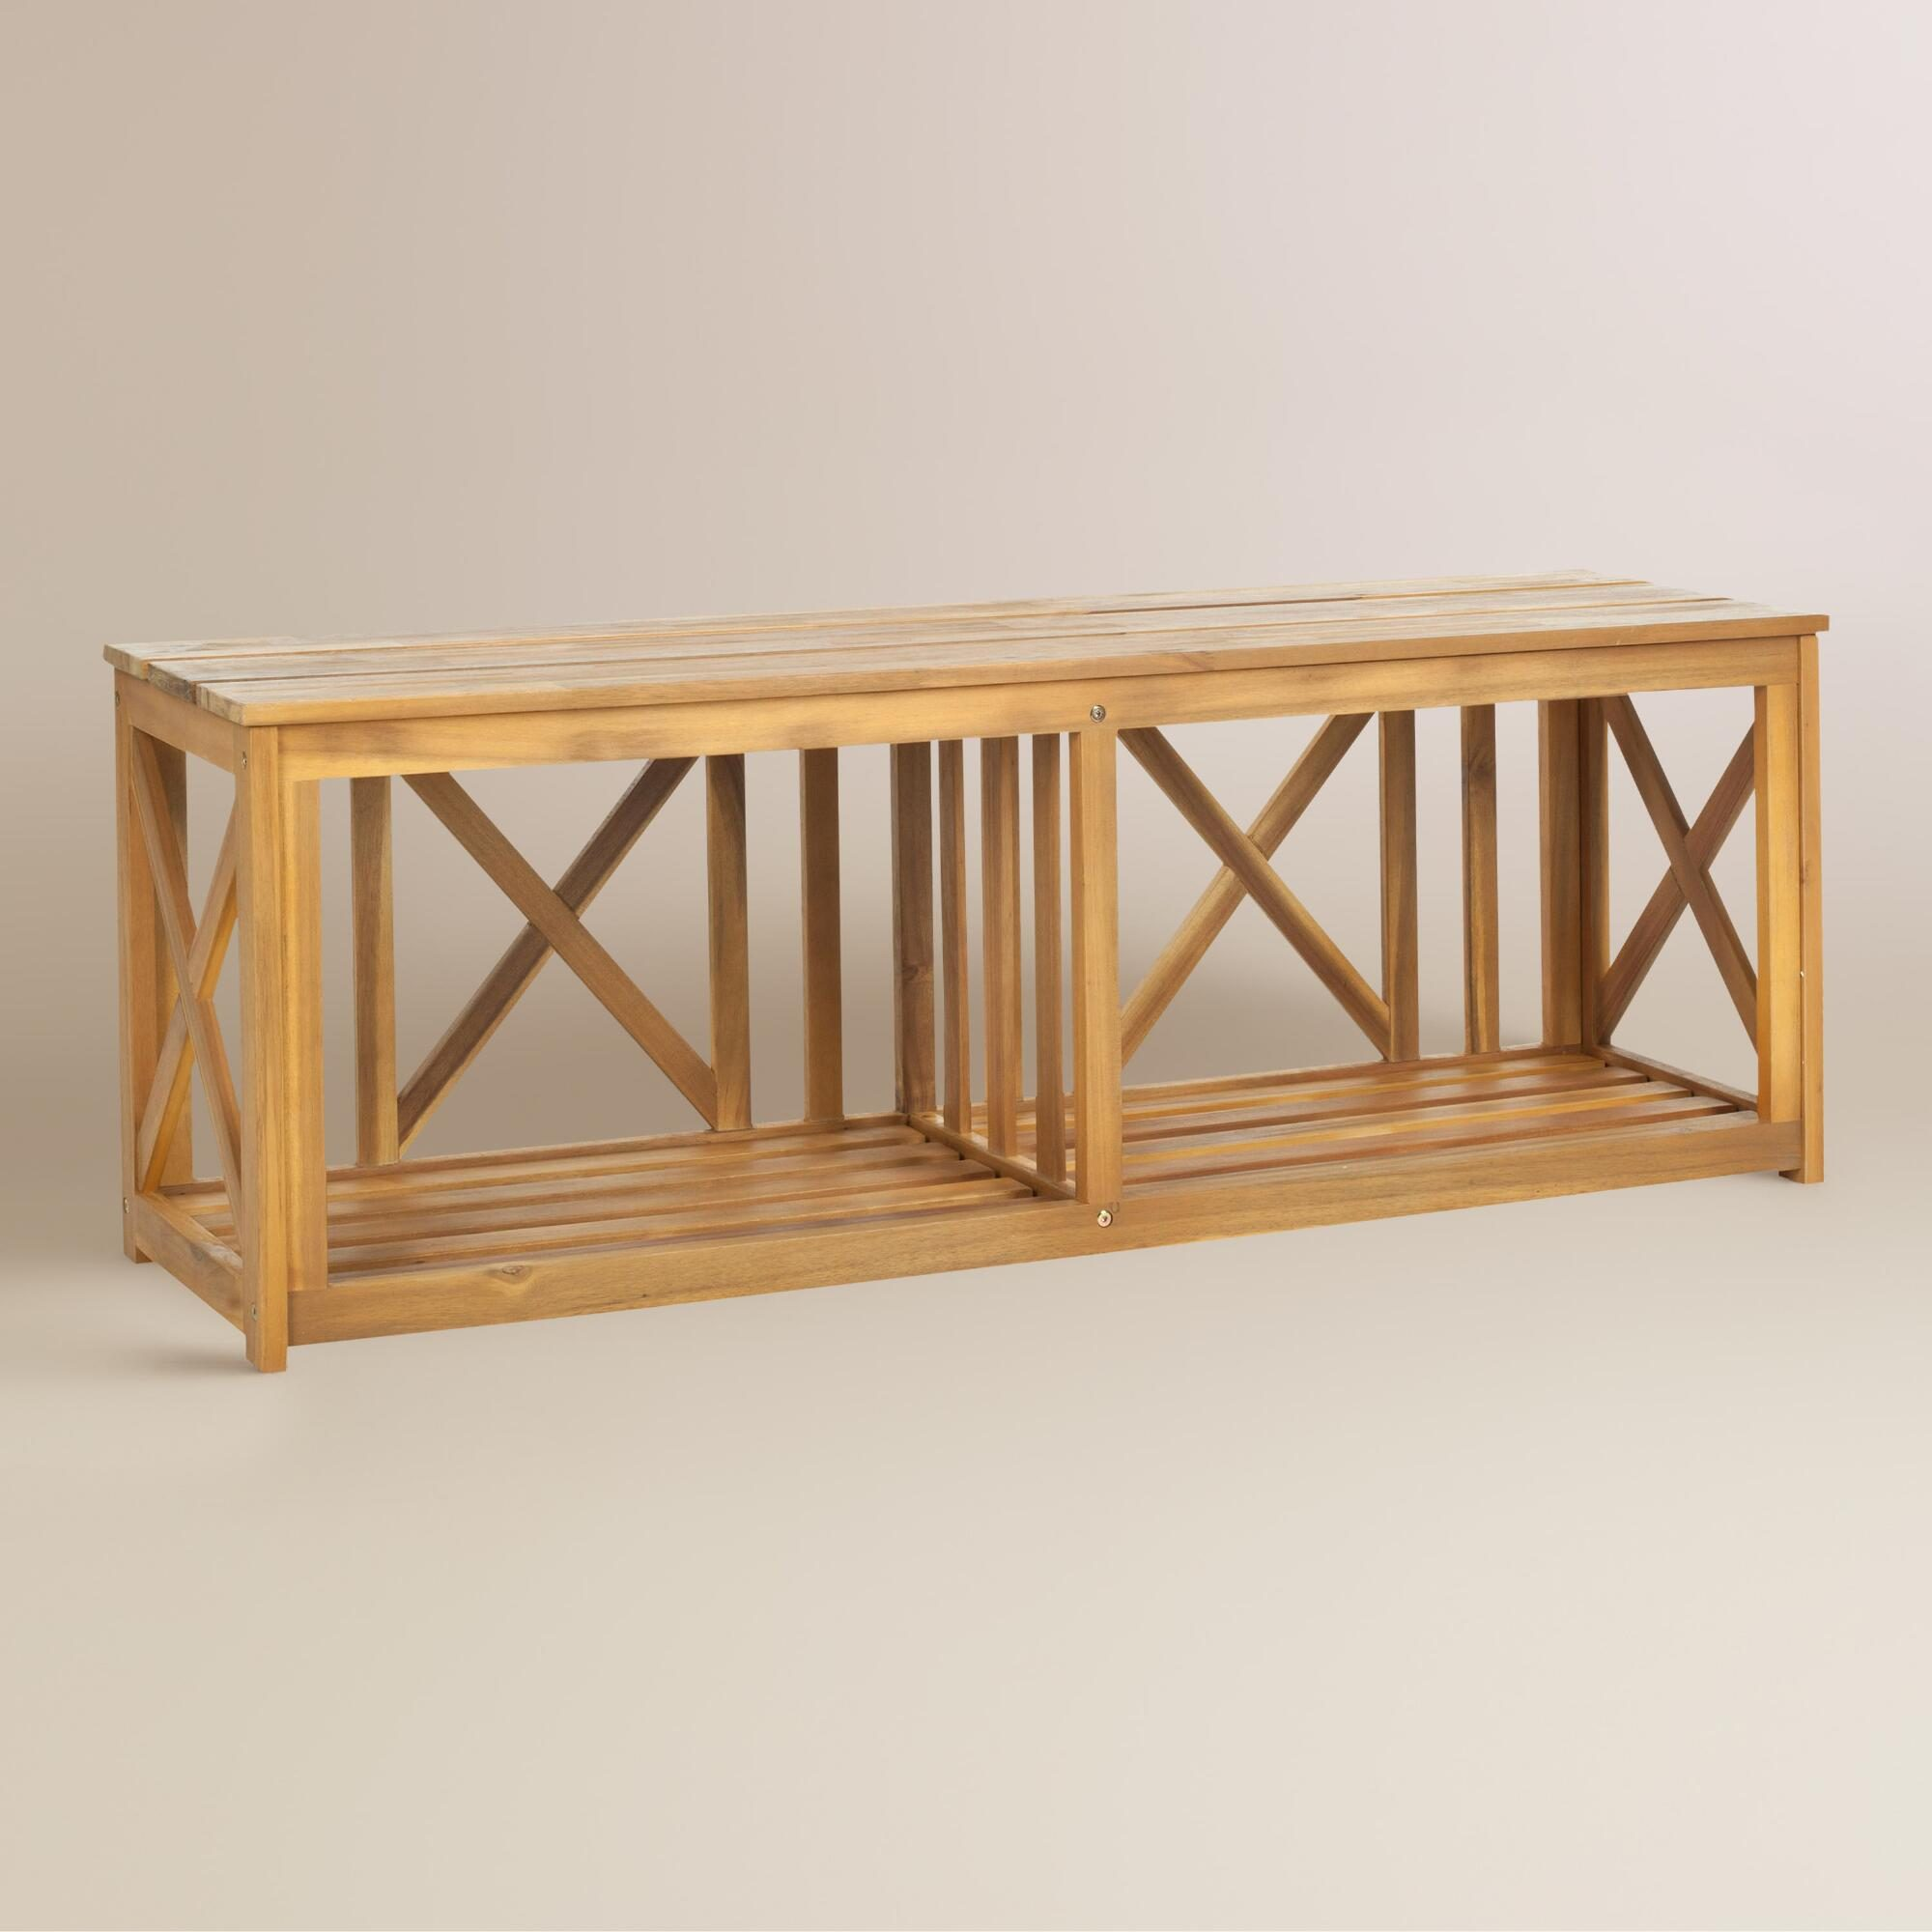 Natural Brown Wood Adlon Outdoor Patio Bench by World Market